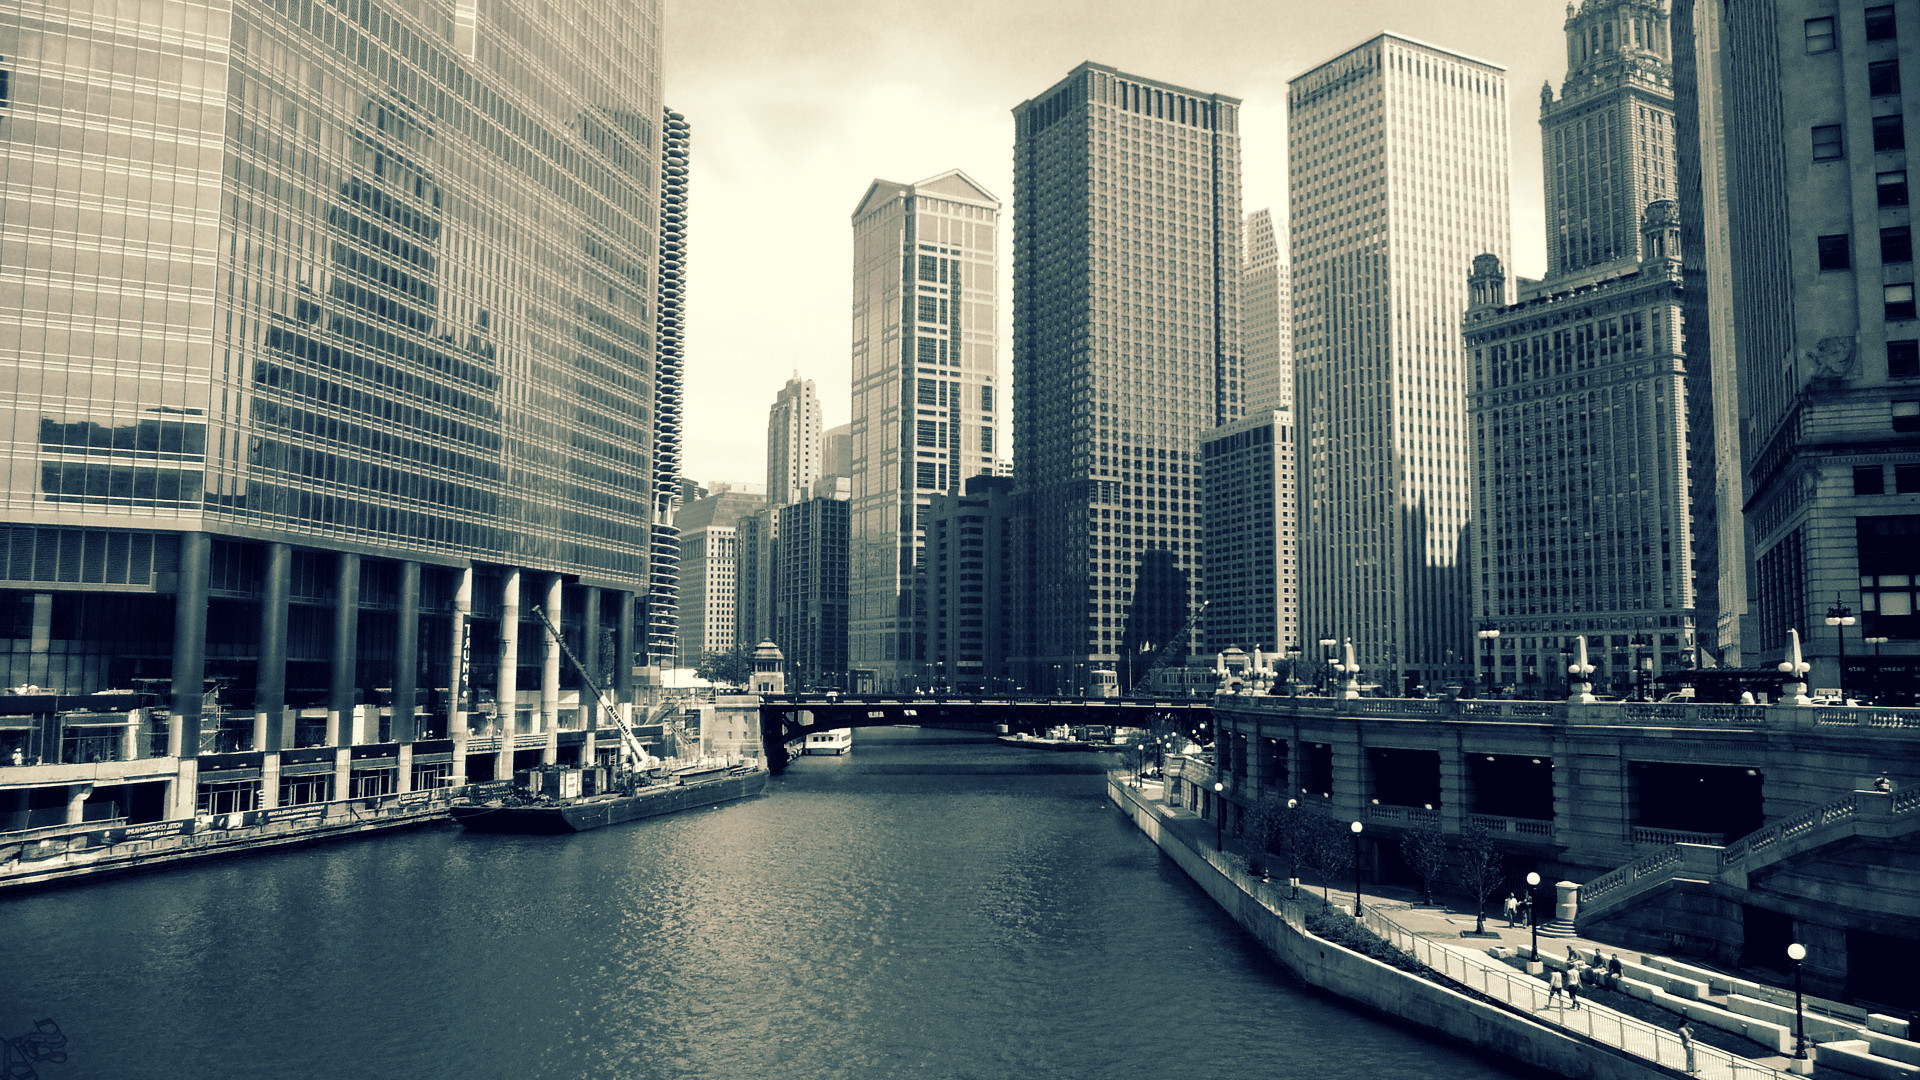 1920x1080 building, Urban, City, River, Chicago Wallpapers HD / Desktop and Mobile  Backgrounds